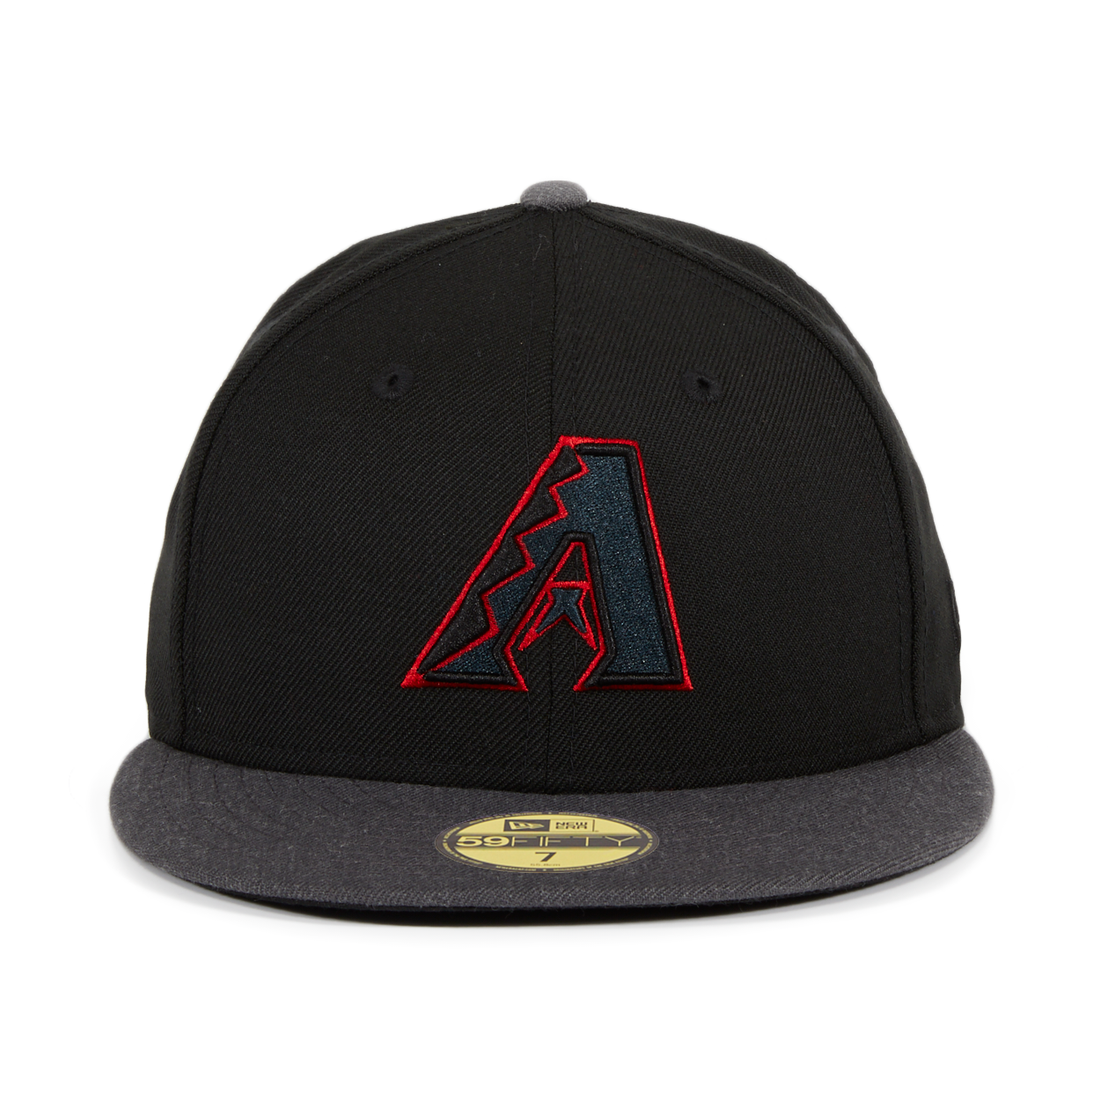 2d0a4ed782d New Era 59Fifty Arizona Diamondbacks Fitted Hat - 2T Black